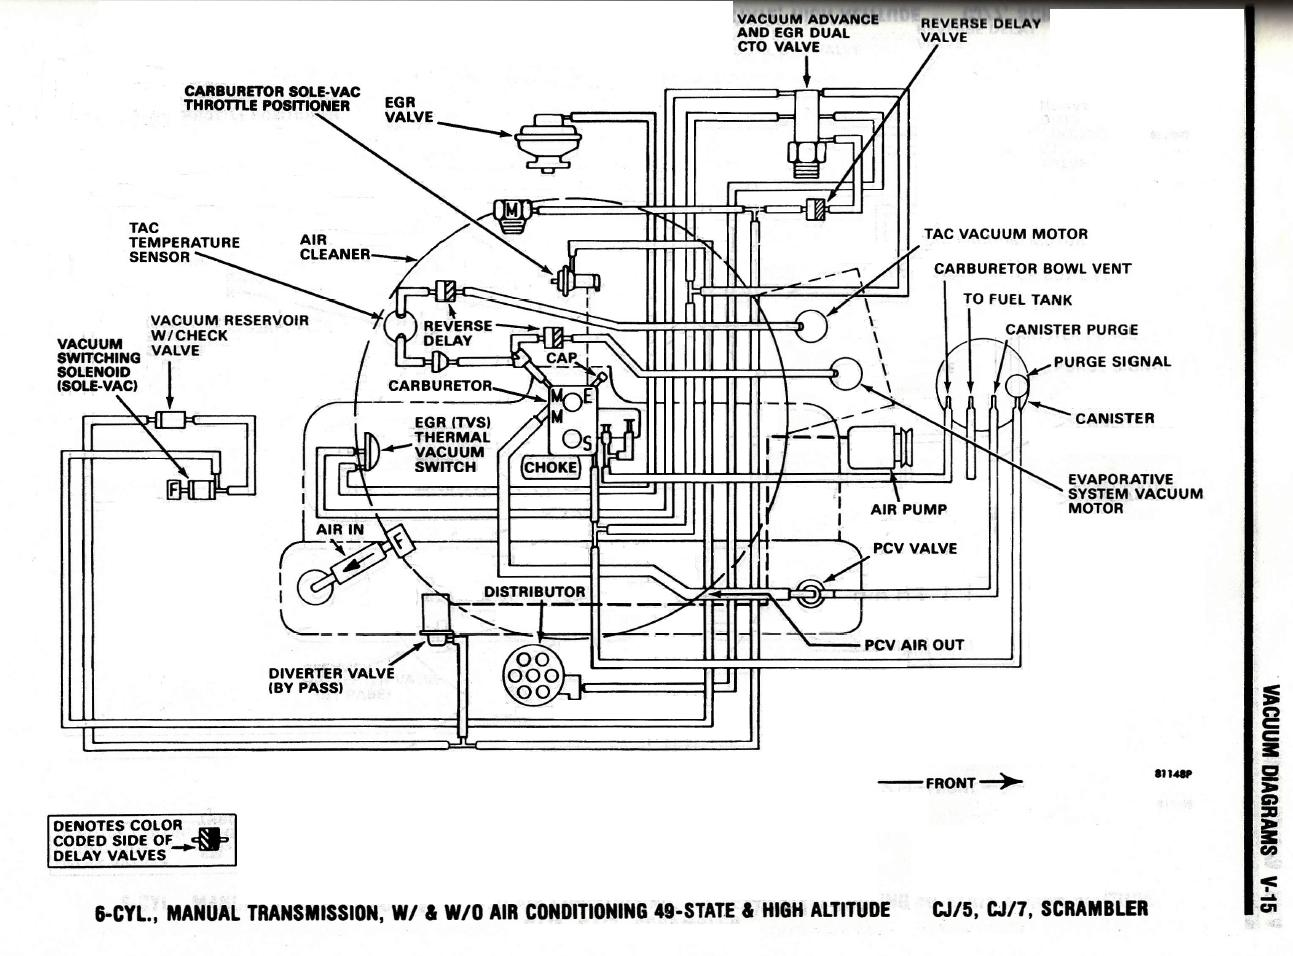 84 Jeep Cj7 258 Engine Diagram Jeep 4.0 Rebuild Kit Wiring